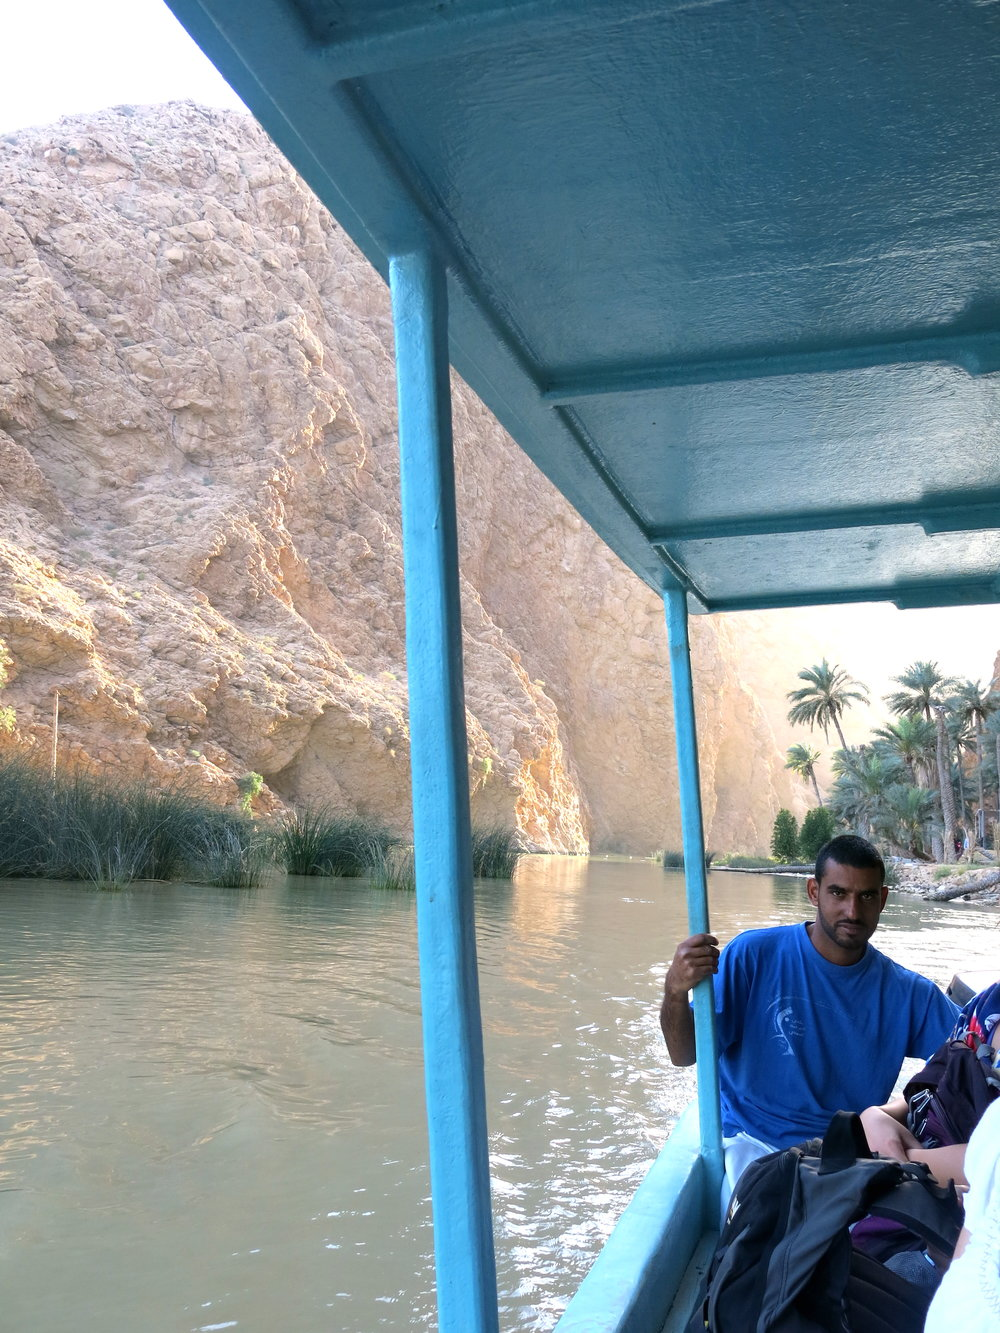 Taking the boat to reach the start of the hike in Wadi Shab